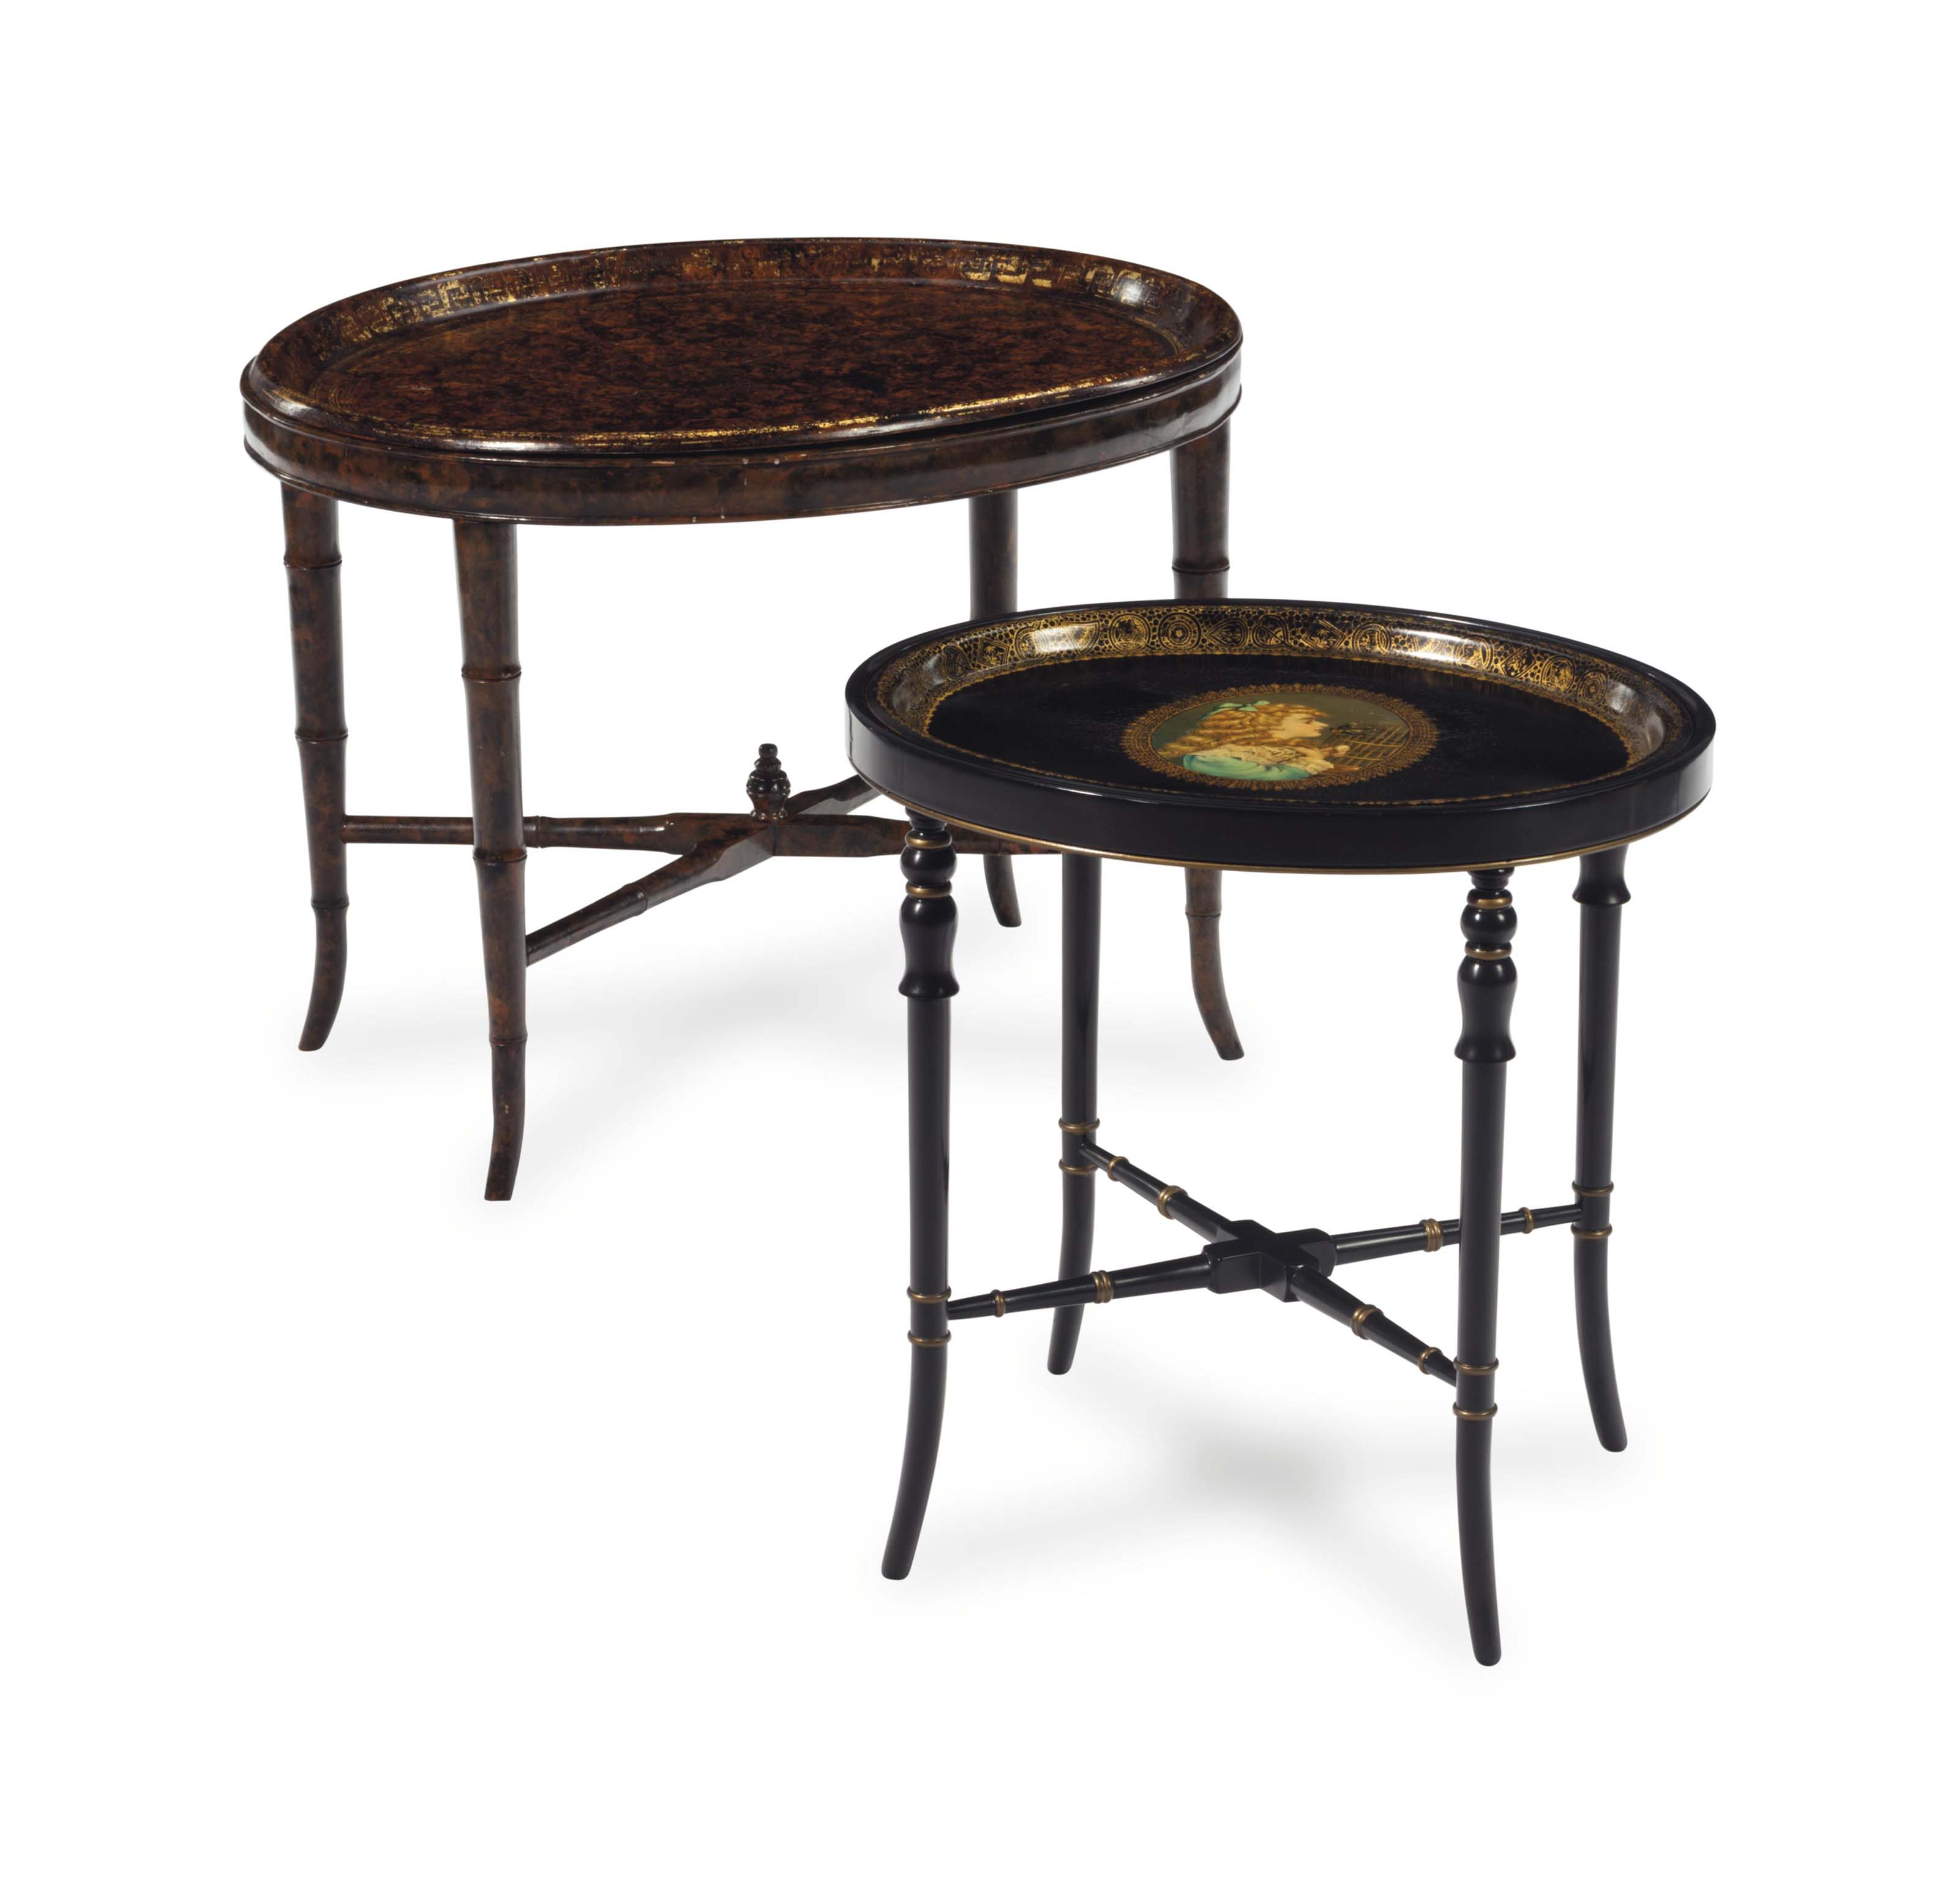 A VICTORIAN PAPIER MACHE FAUX BOIS-DECORATED TRAY ON STAND, AND A CONTINENTAL TOLE PEINTE TRAY ON LATER BLACK-PAINTED STAND